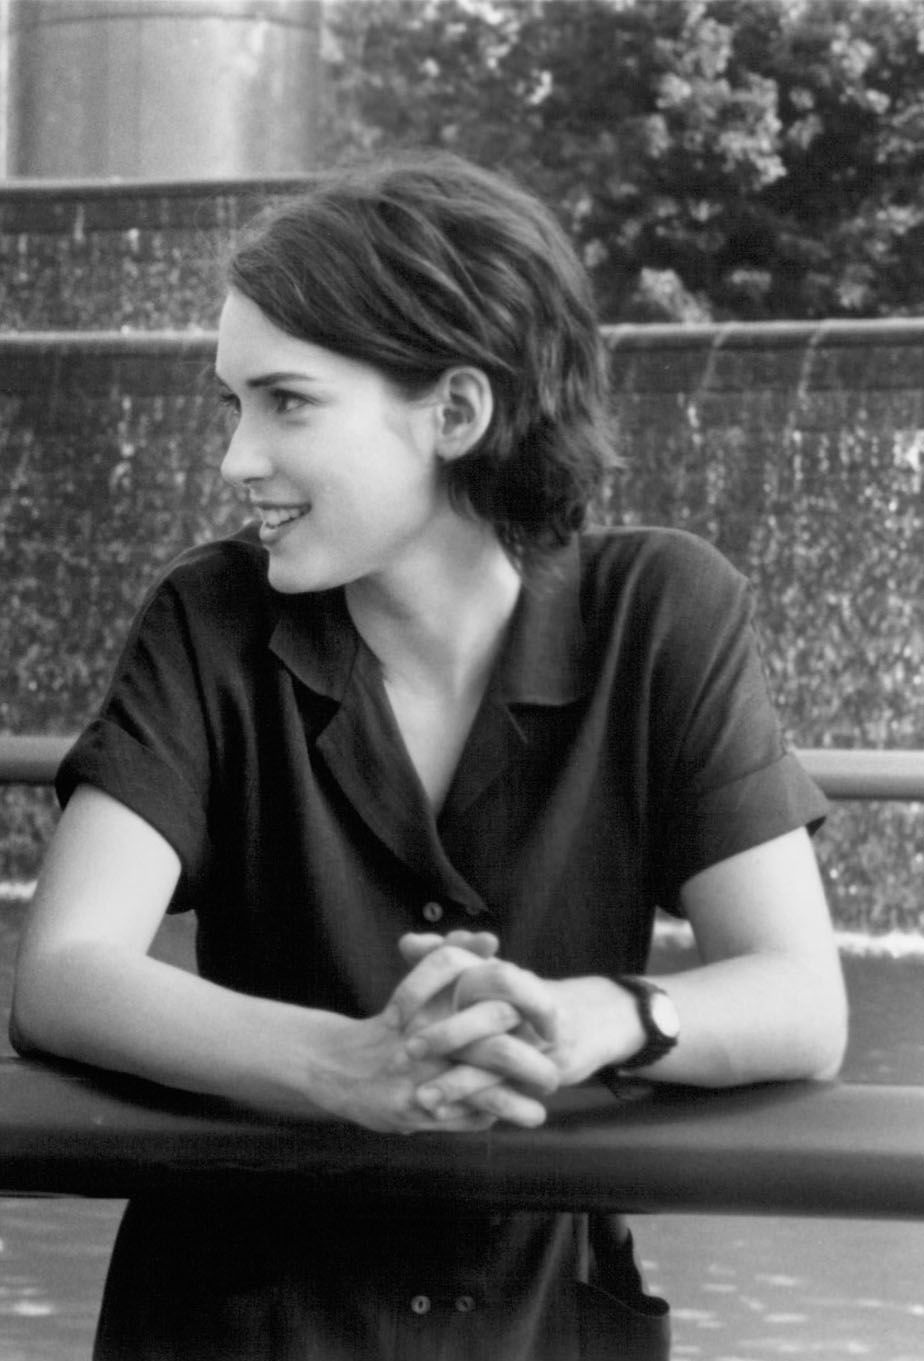 Pin By Leslie Noel On Mind Body Soul Style Winona Ryder Hair Winona Ryder Winona Forever